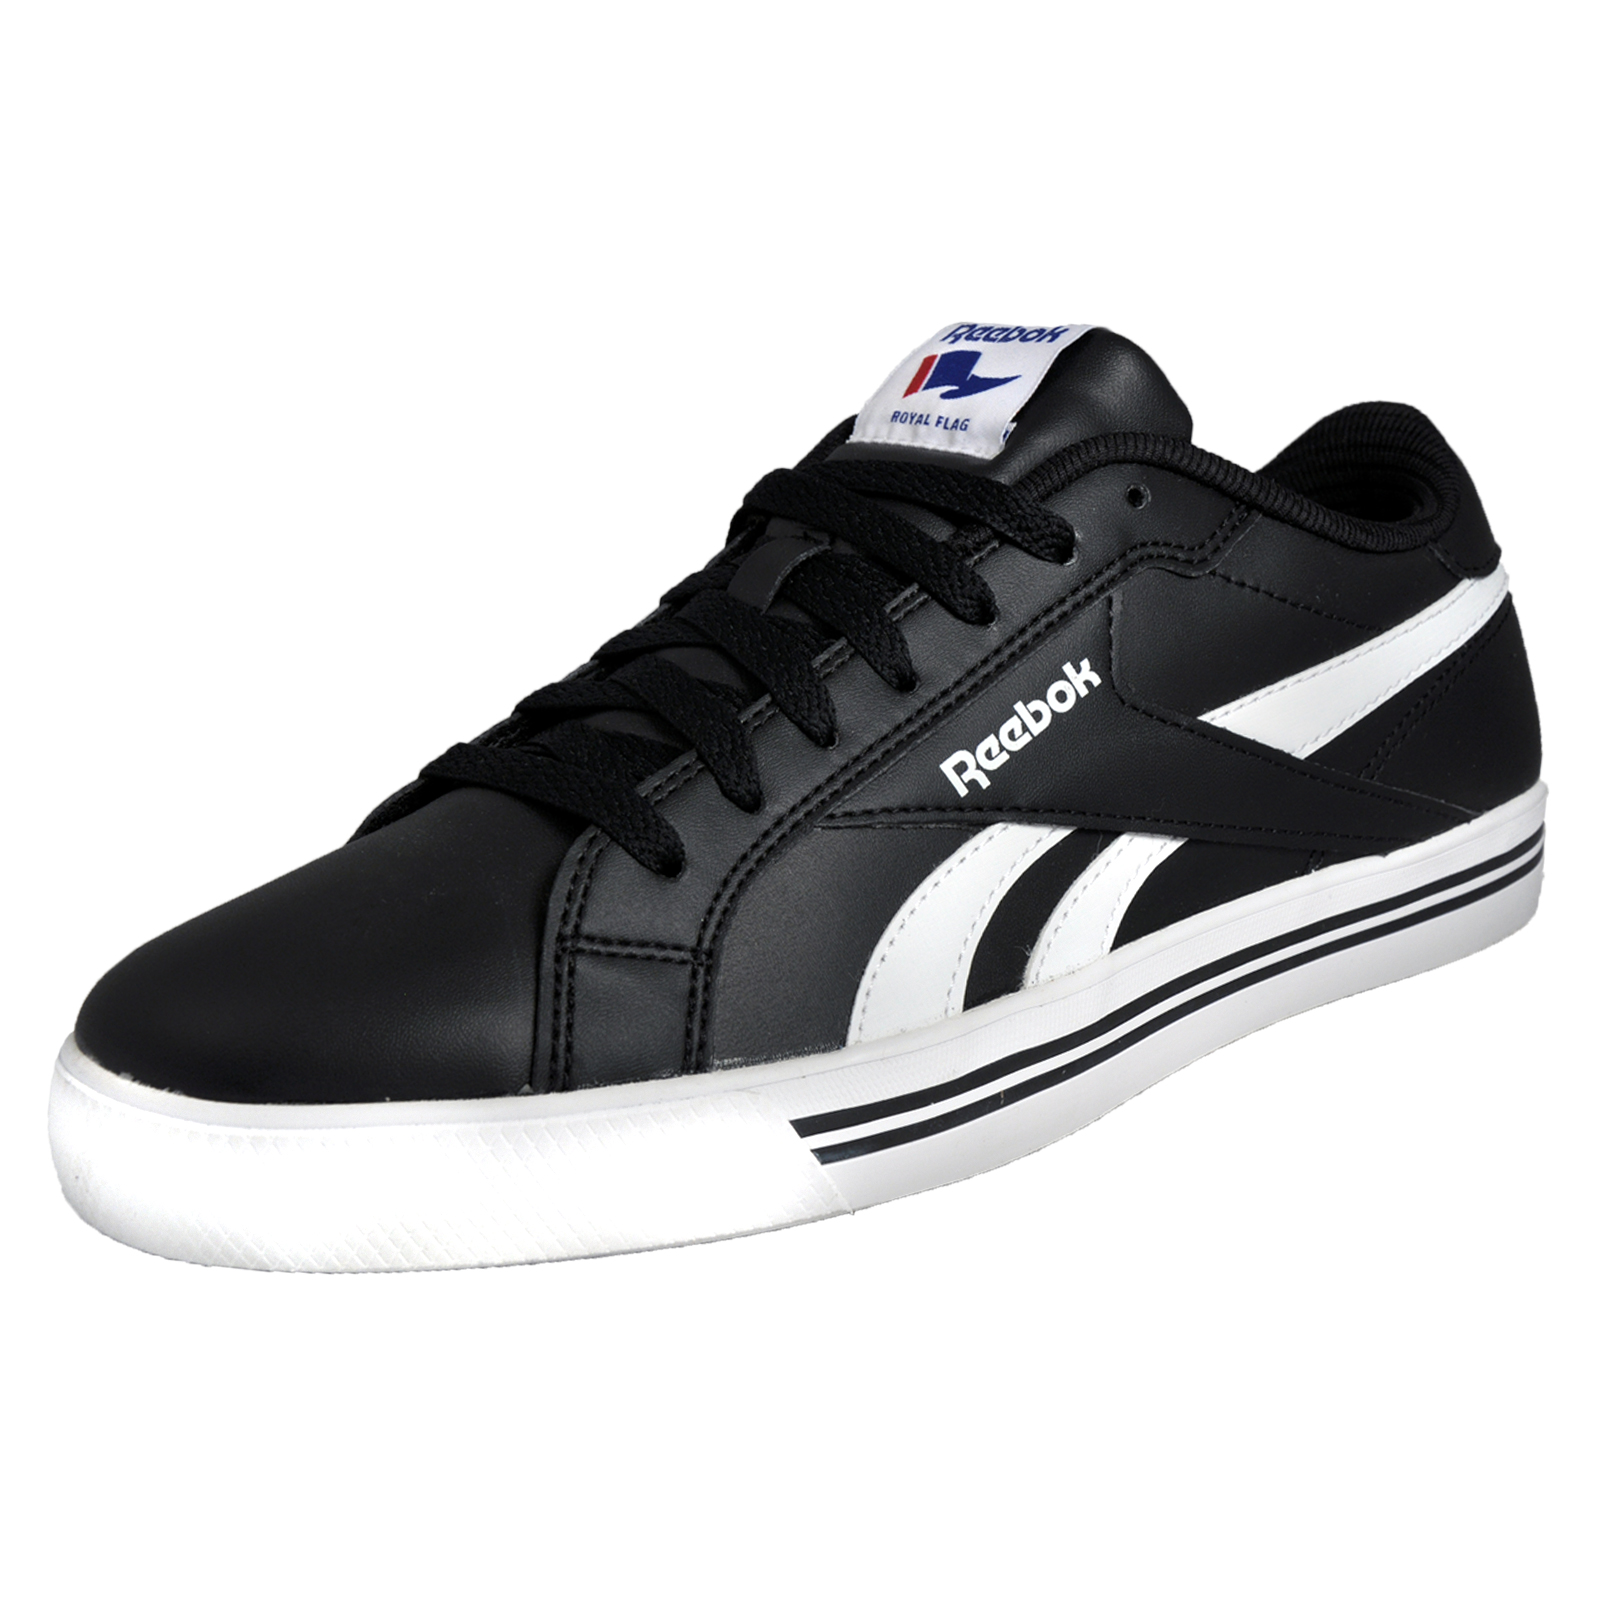 c66fffa5956 Details about Reebok Royal Complete Low 8.5 Men s Classic Causal Retro  Trainers Black